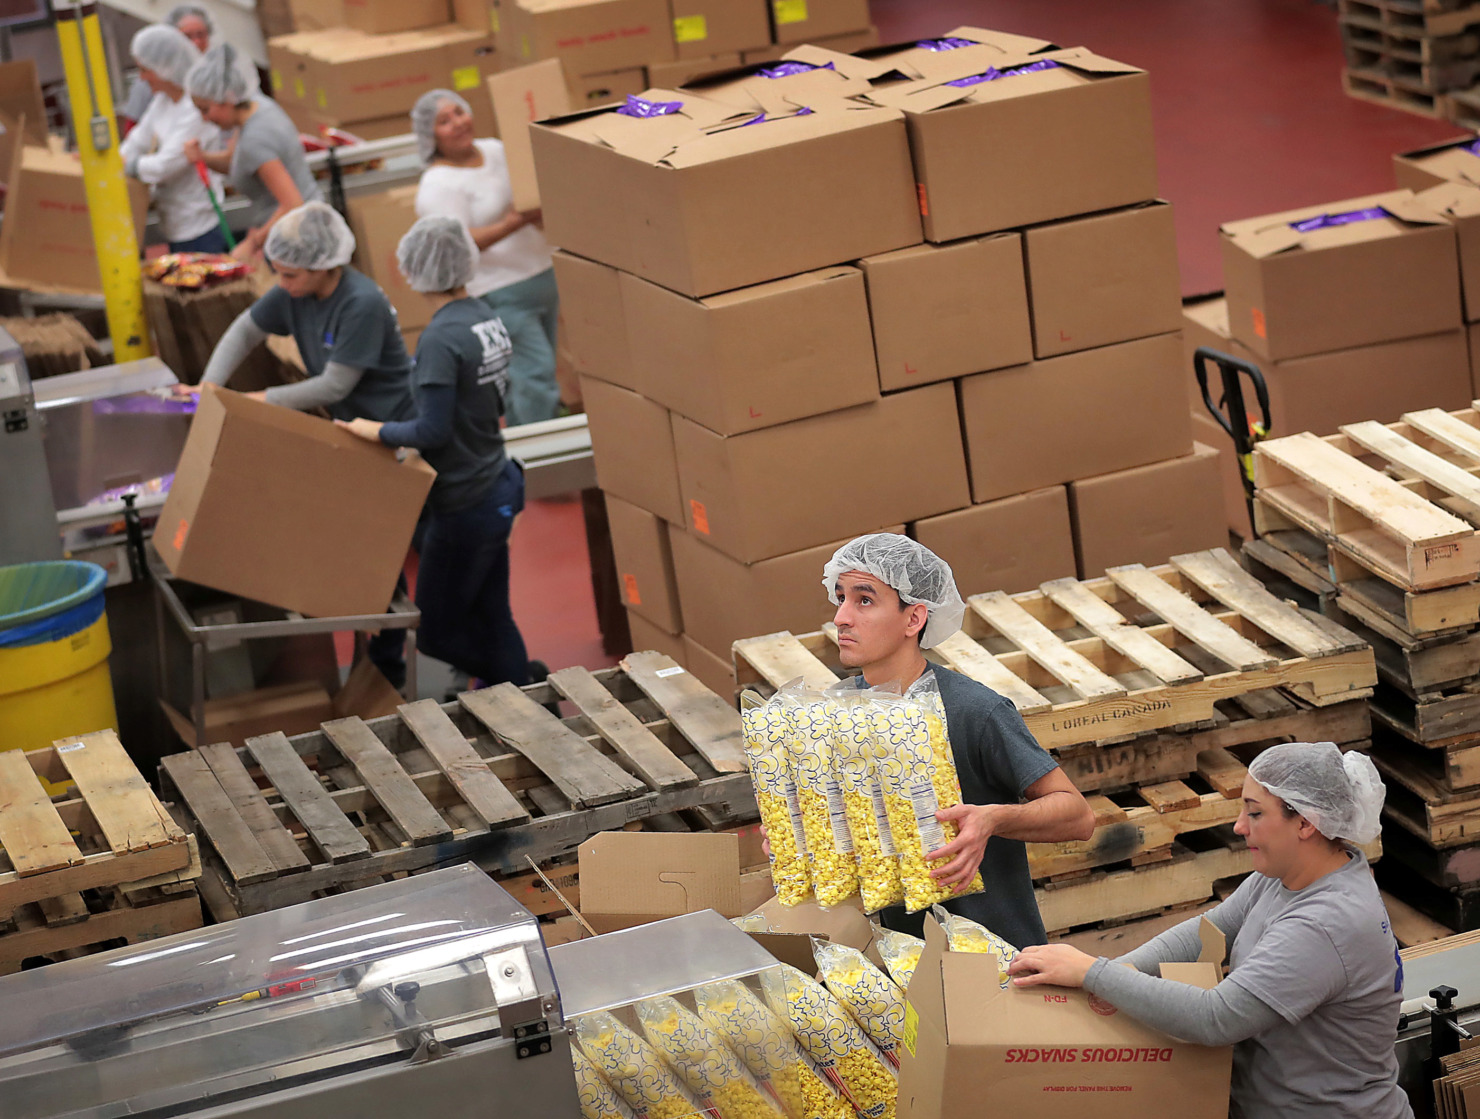 <strong>Workers make and package cheese puffs, pork rinds, and popcorn among other snacks at the Brimhall Foods Company production facility in Bartlett where Brim's Snack Foods are made.</strong> (Jim Weber/Daily Memphian)